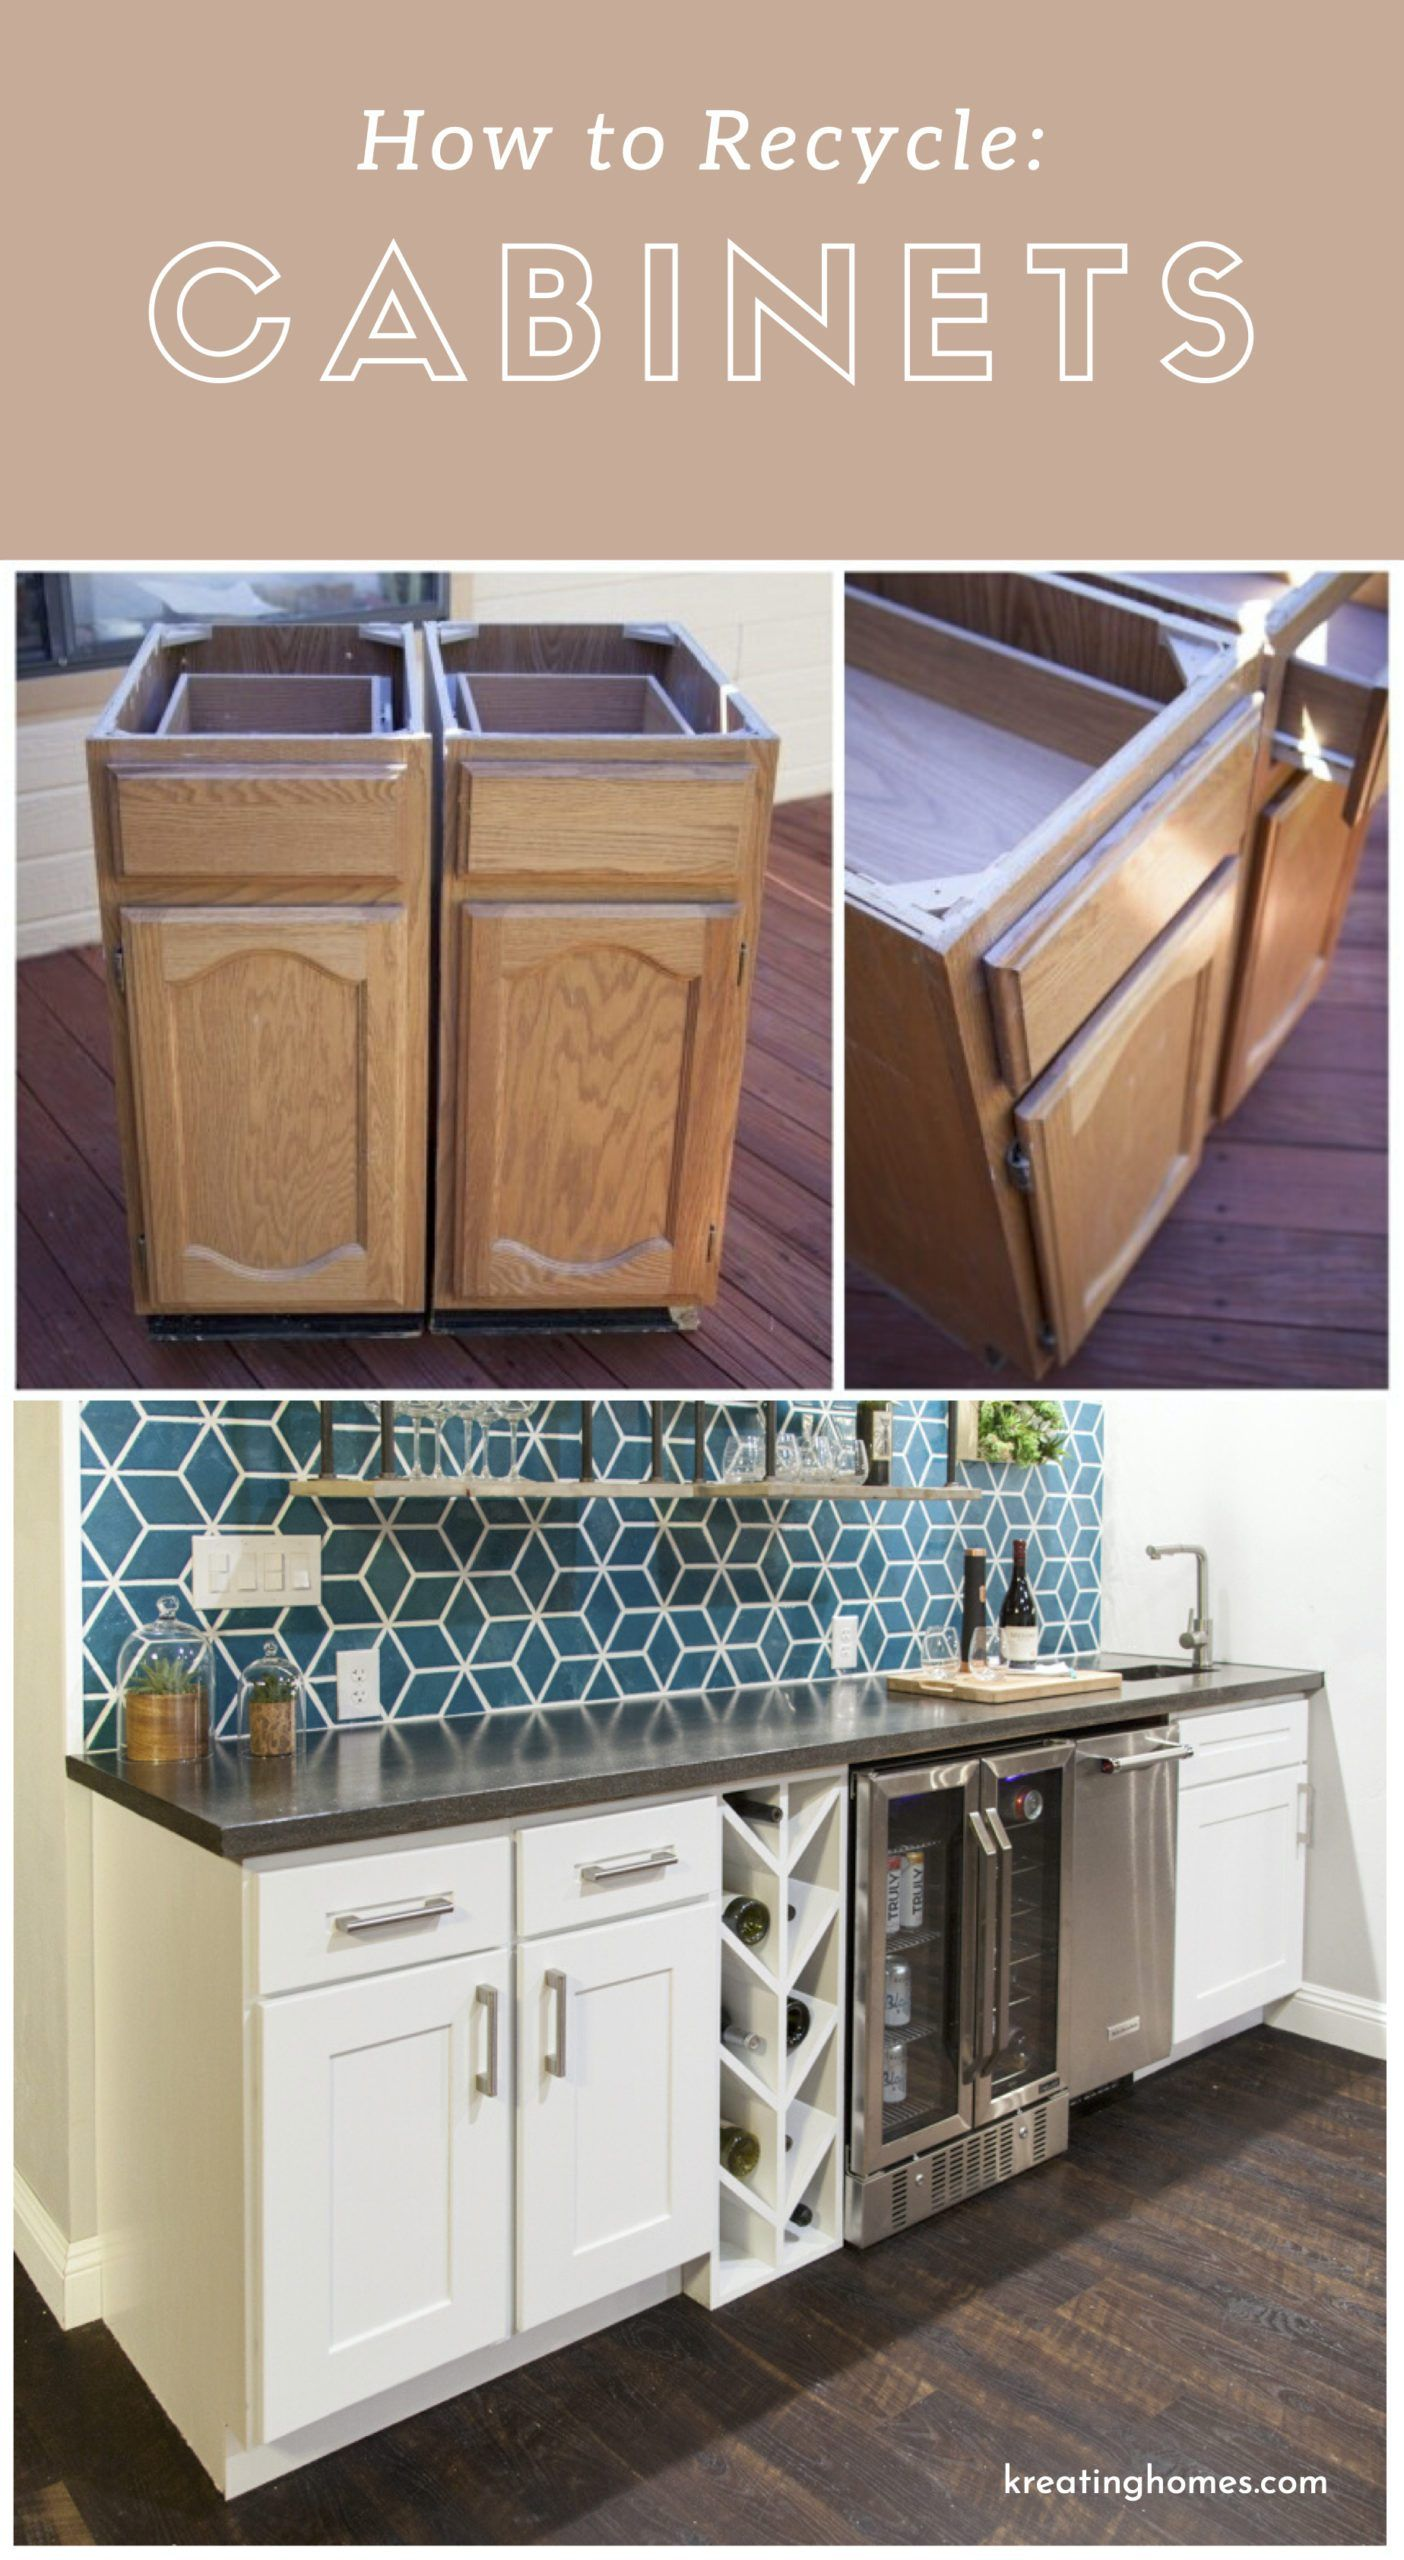 What To Do With Old Kitchen Cabinets Recycled Kitchen Cabinets   KREATING HOMES in 2020 | Recycled